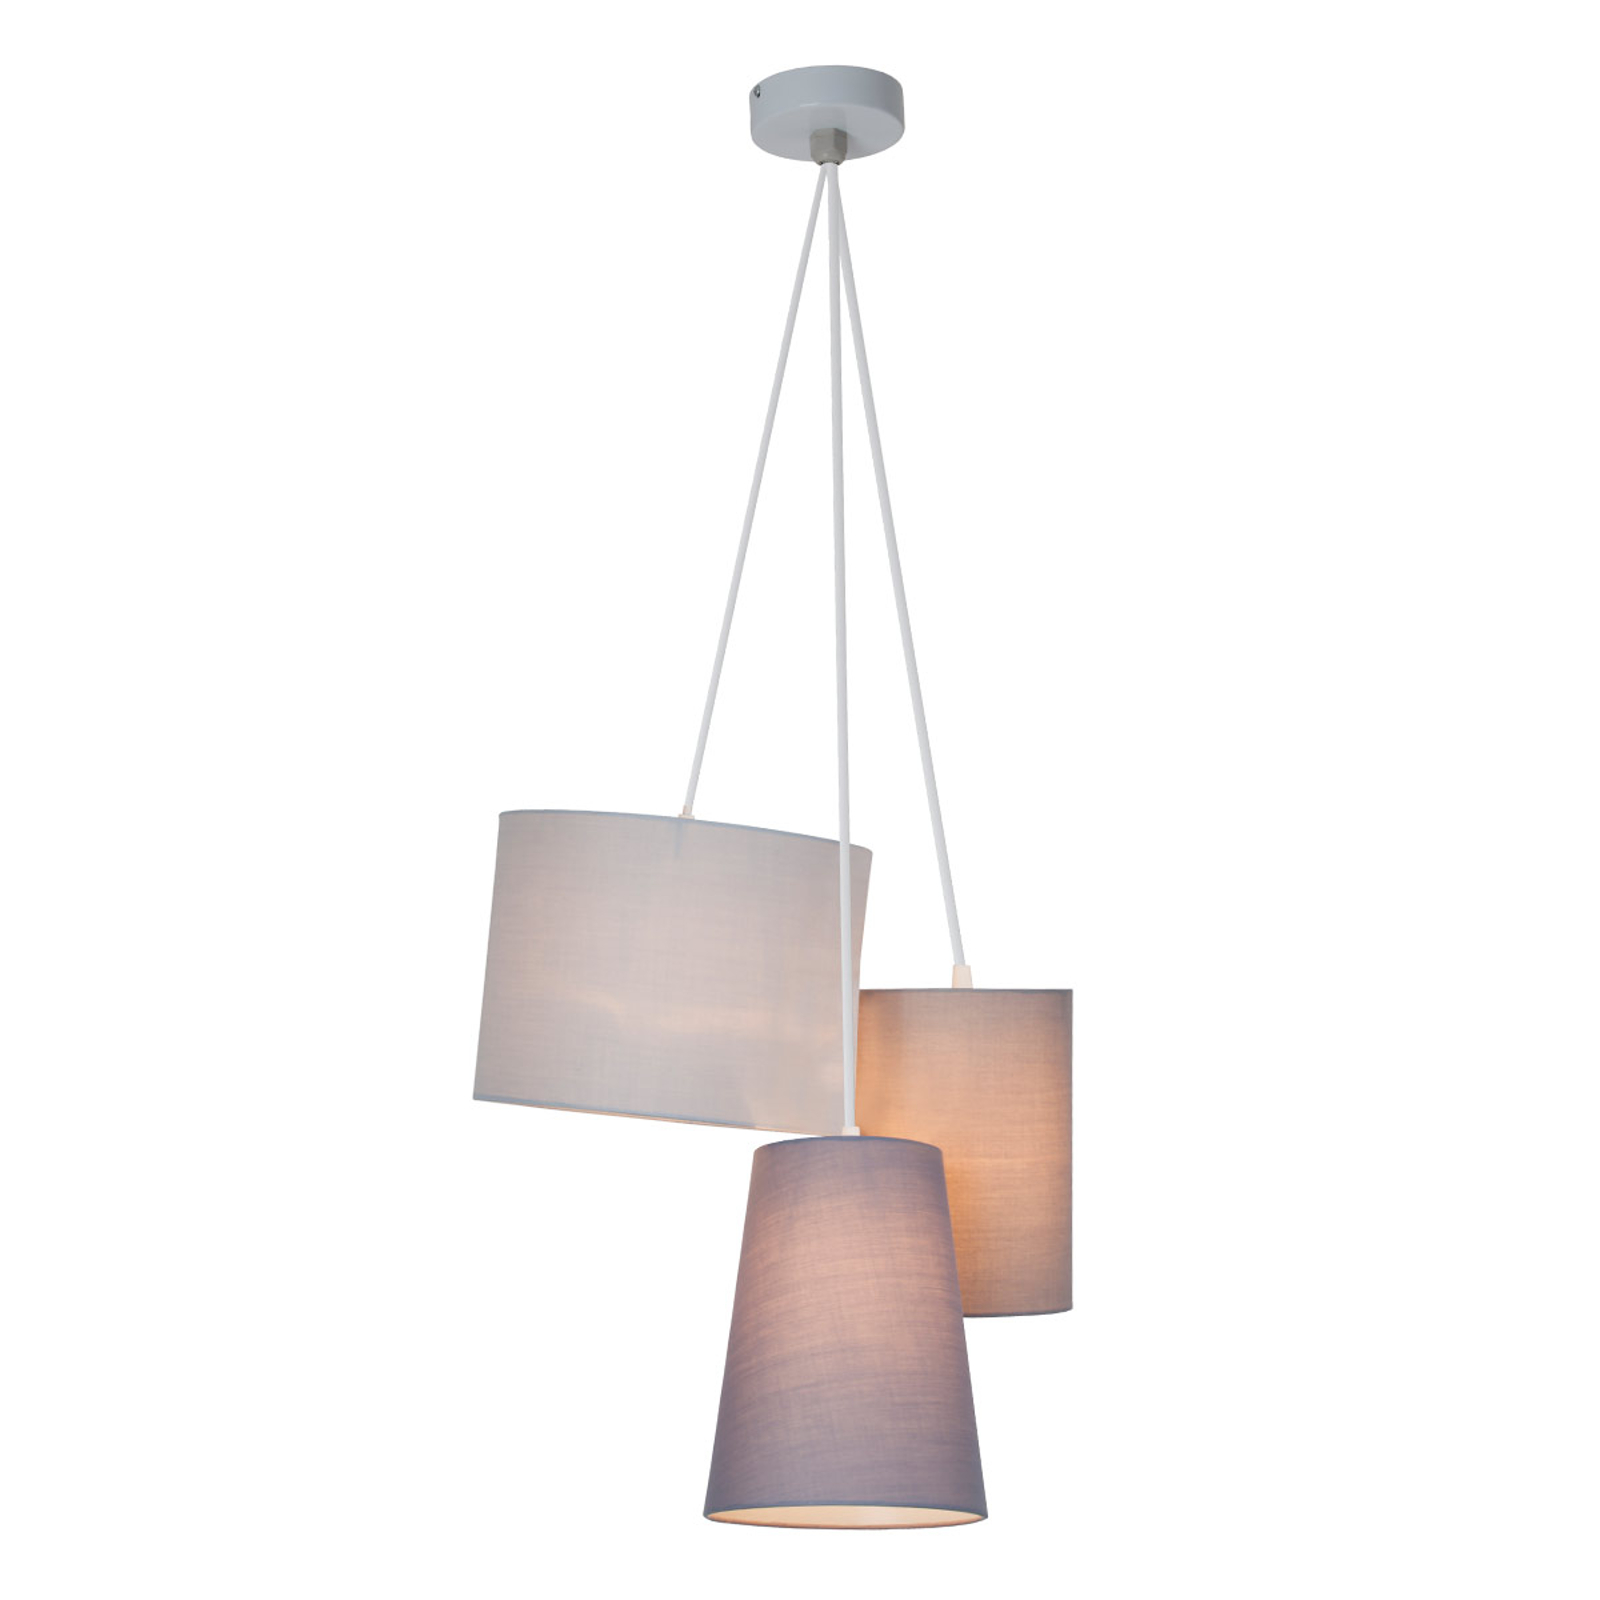 Three-bulb hanging light with fabric lampshades_1507199_1